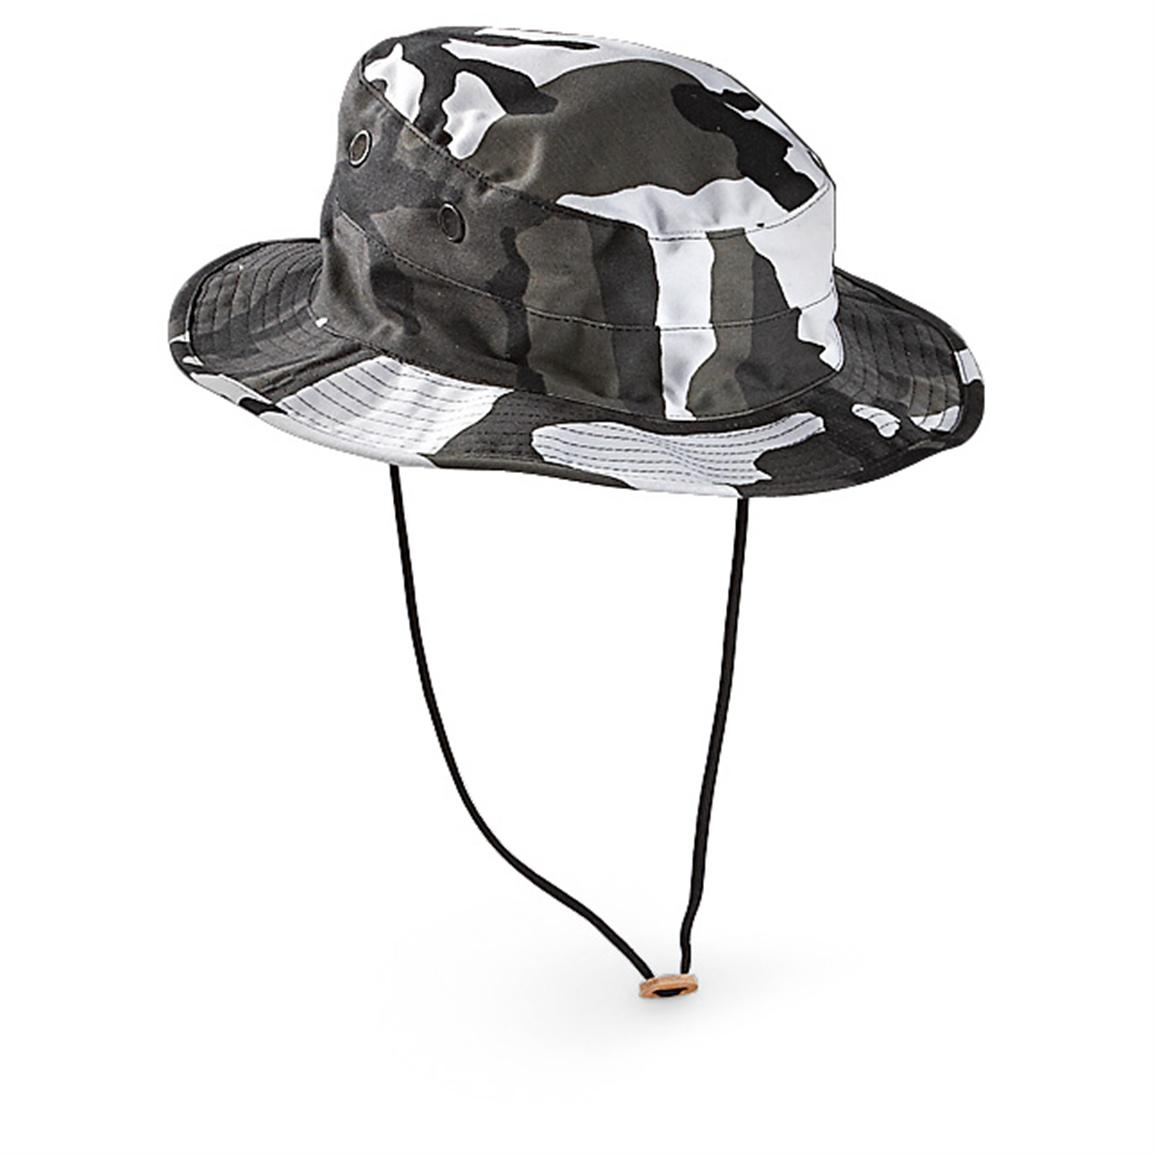 2 HQ ISSUE® Military-style BDU Boonie Hats, Urban Camo